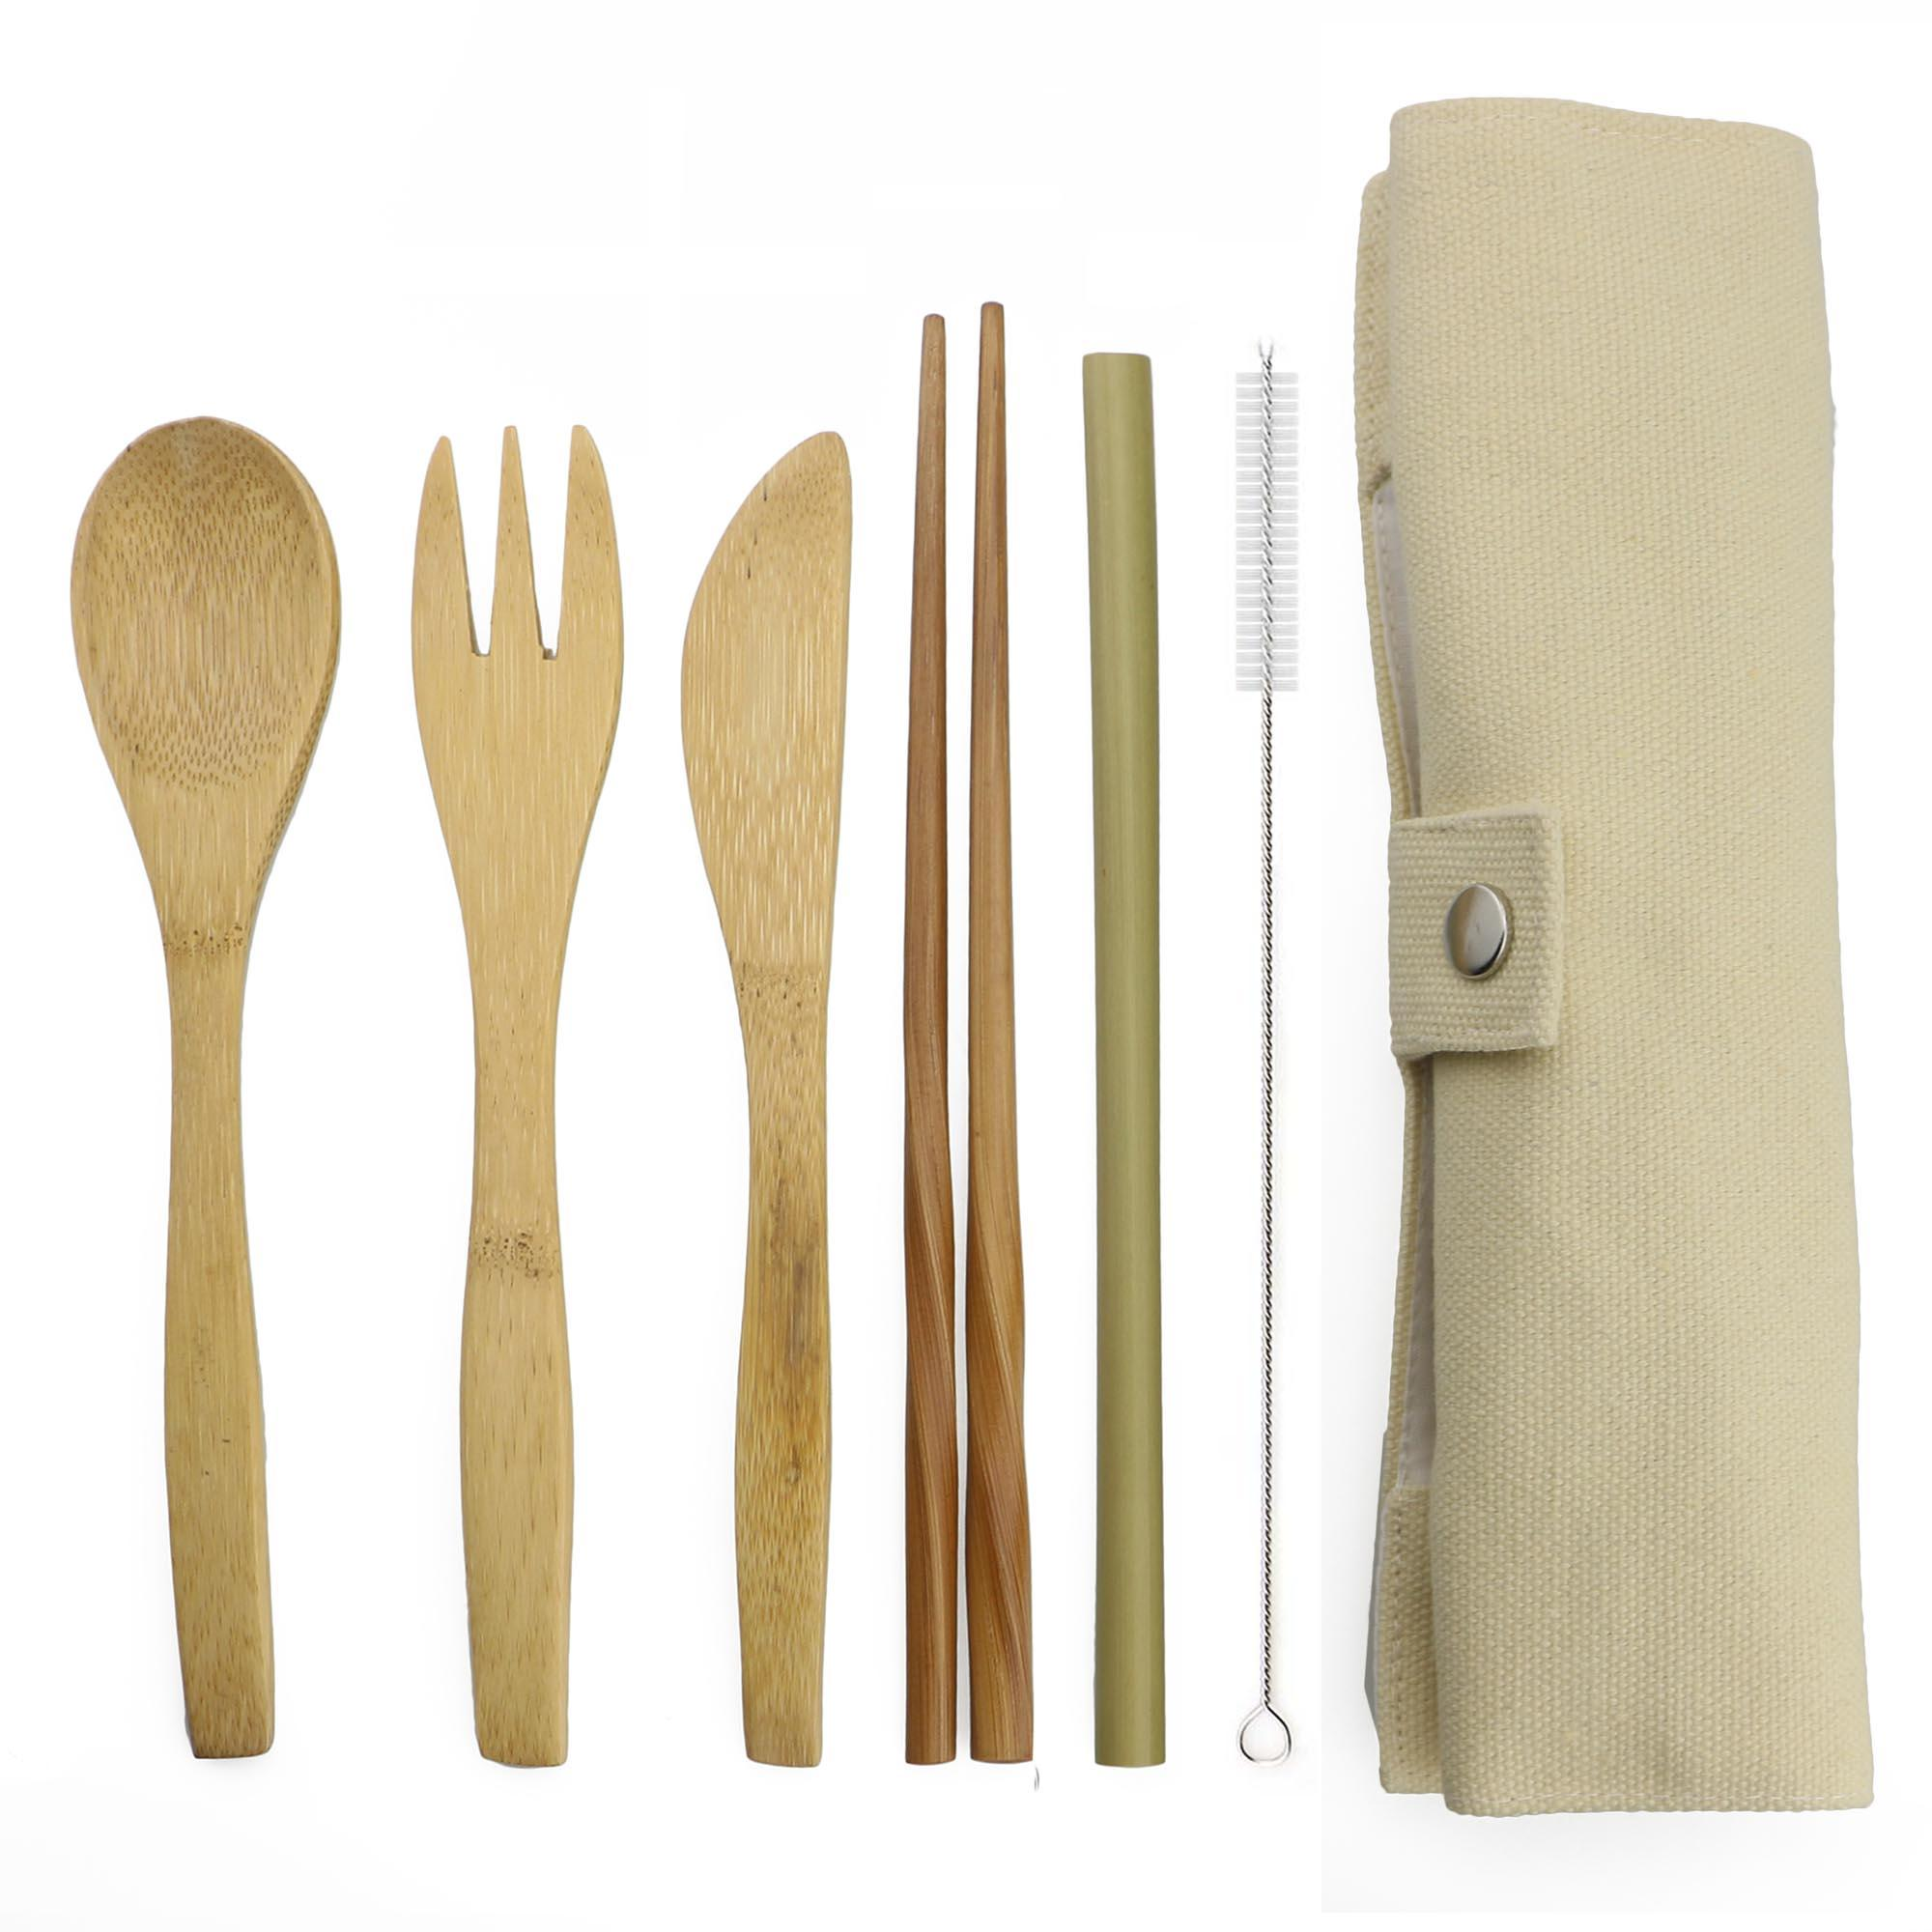 7-Piece Wooden Flatware Cutlery Set Bamboo Straw Set With Cloth Bag Knives Fork Spoon Chopsticks Travel Wholesale